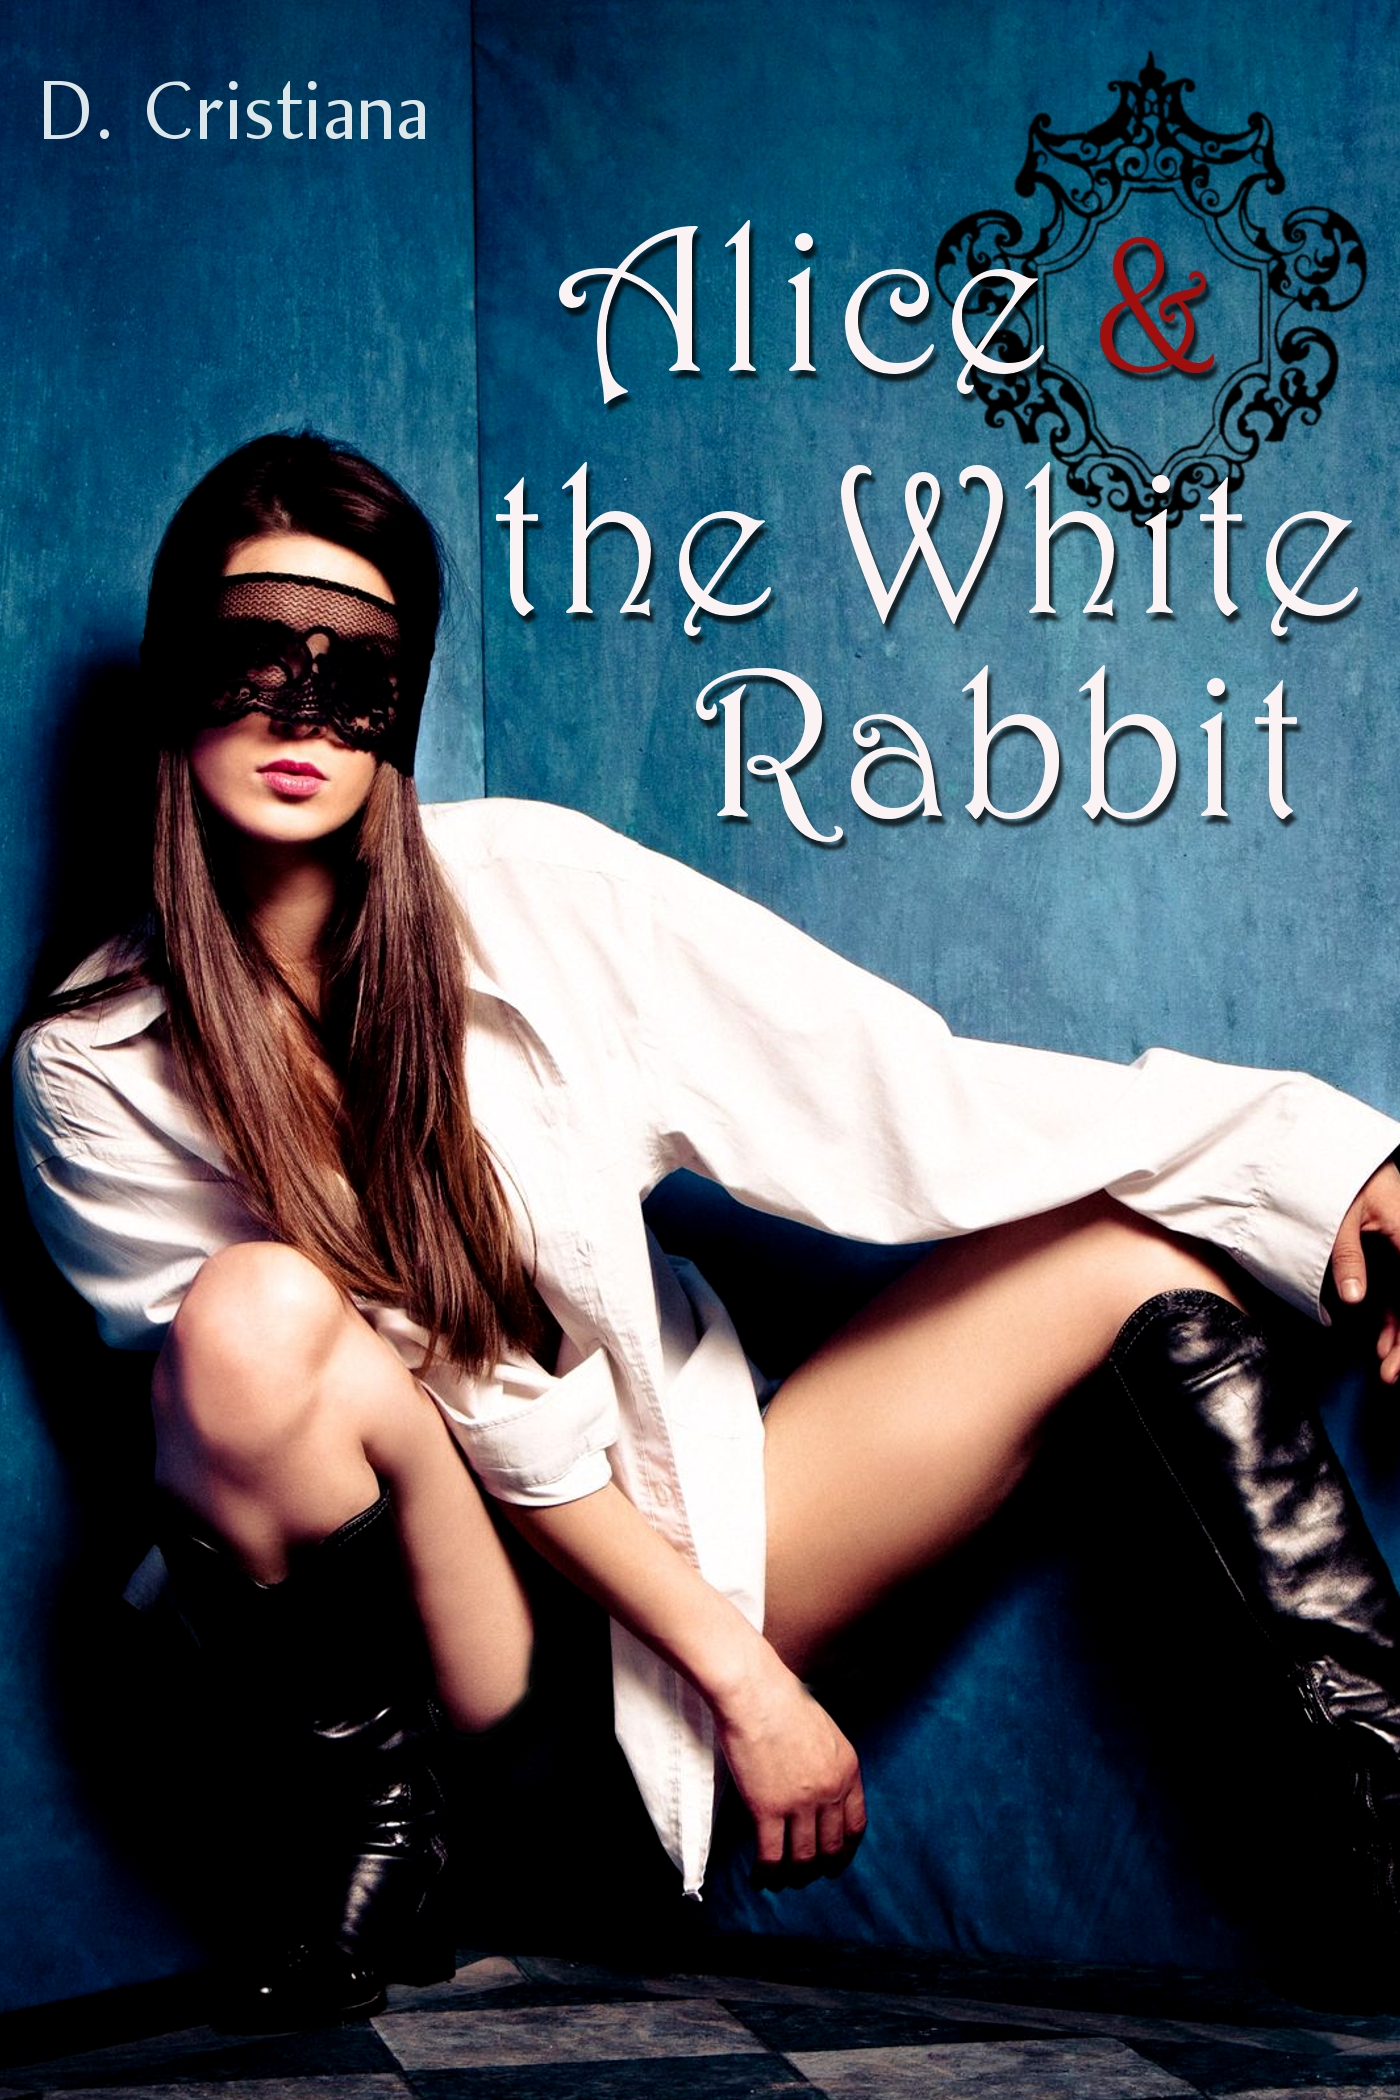 D. Cristiana - Alice & the White Rabbit (Wonderland-Inspired Erotica)